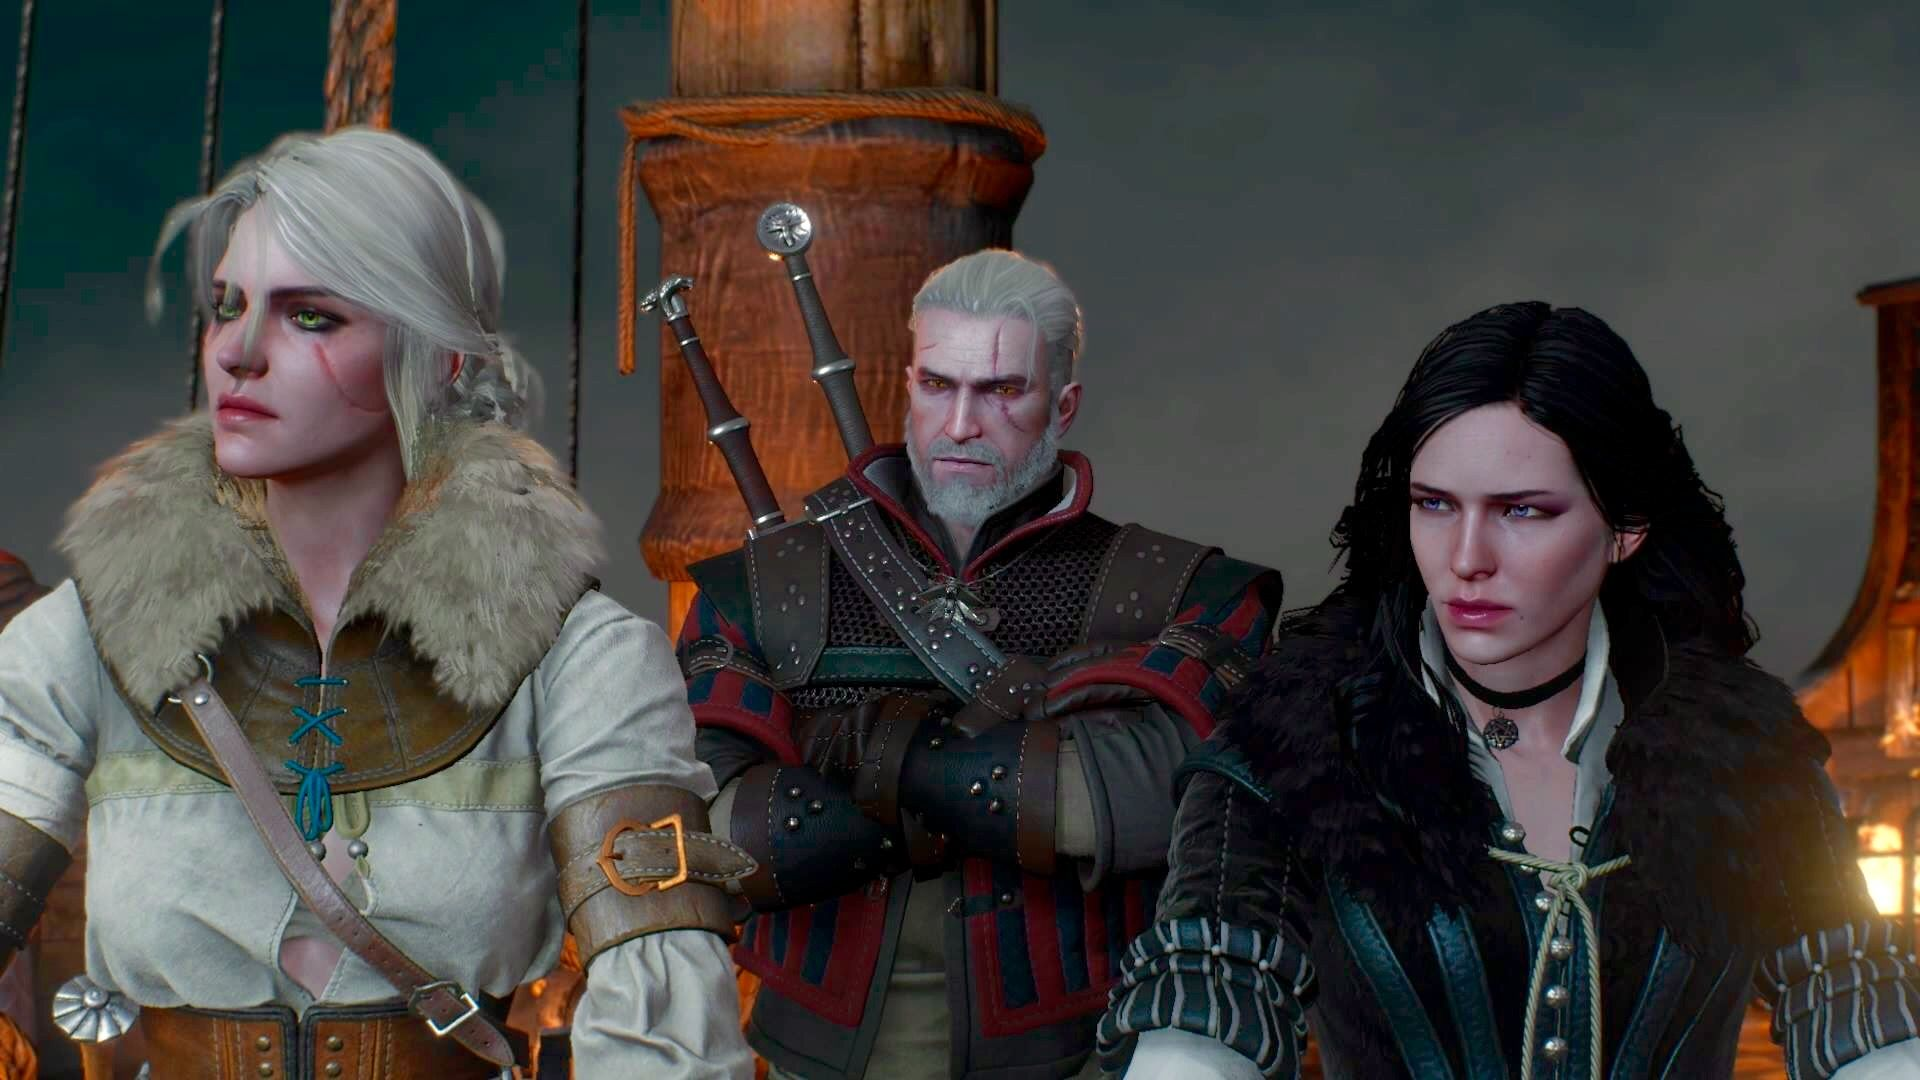 yennefer and geralt meet the parents